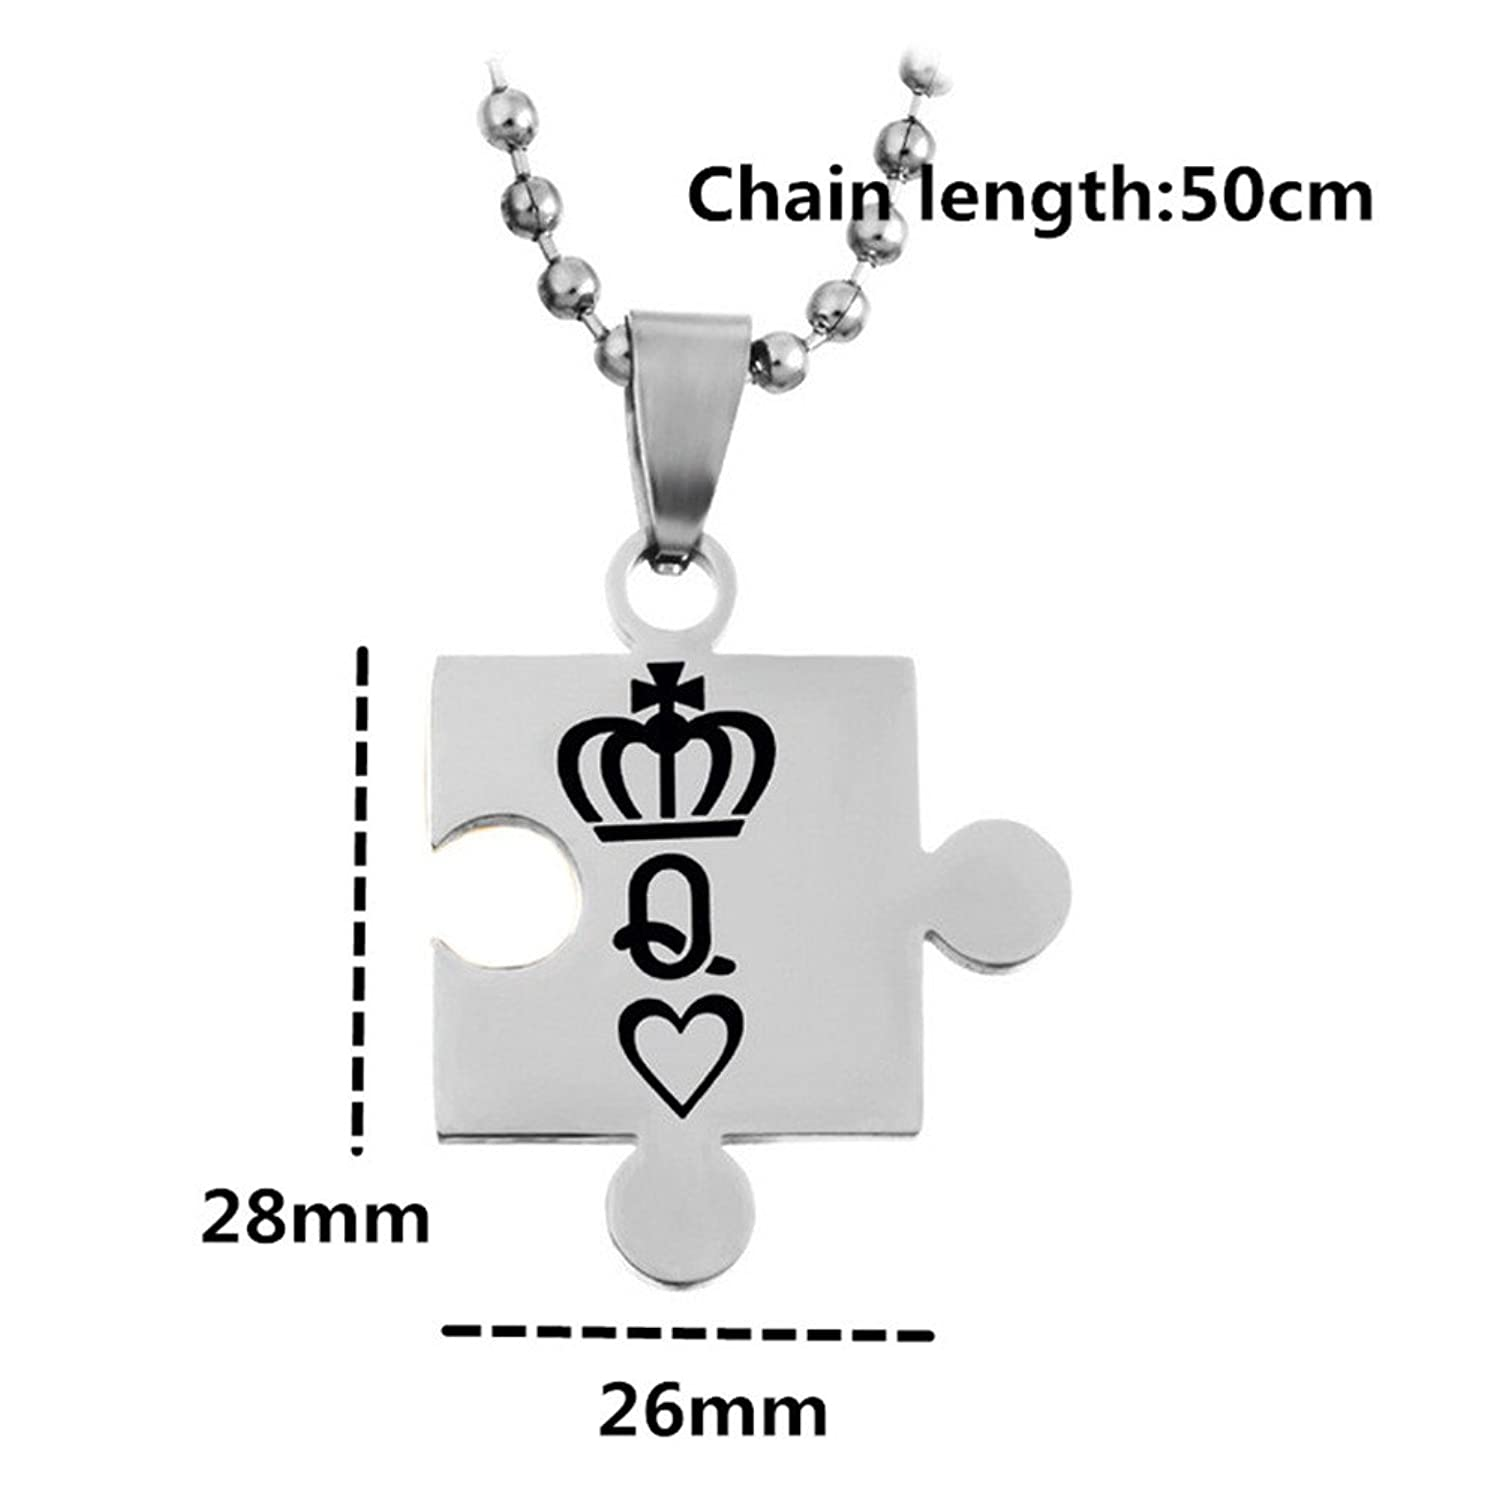 Image result for SL 2pcs Missing Puzzle Women Men Stainless Steel Beloved Romantic Personalized Promsied Necklace Statement Couple Pendant for Girlfriend,Boyfriend,Wife,Husband-Queen and King